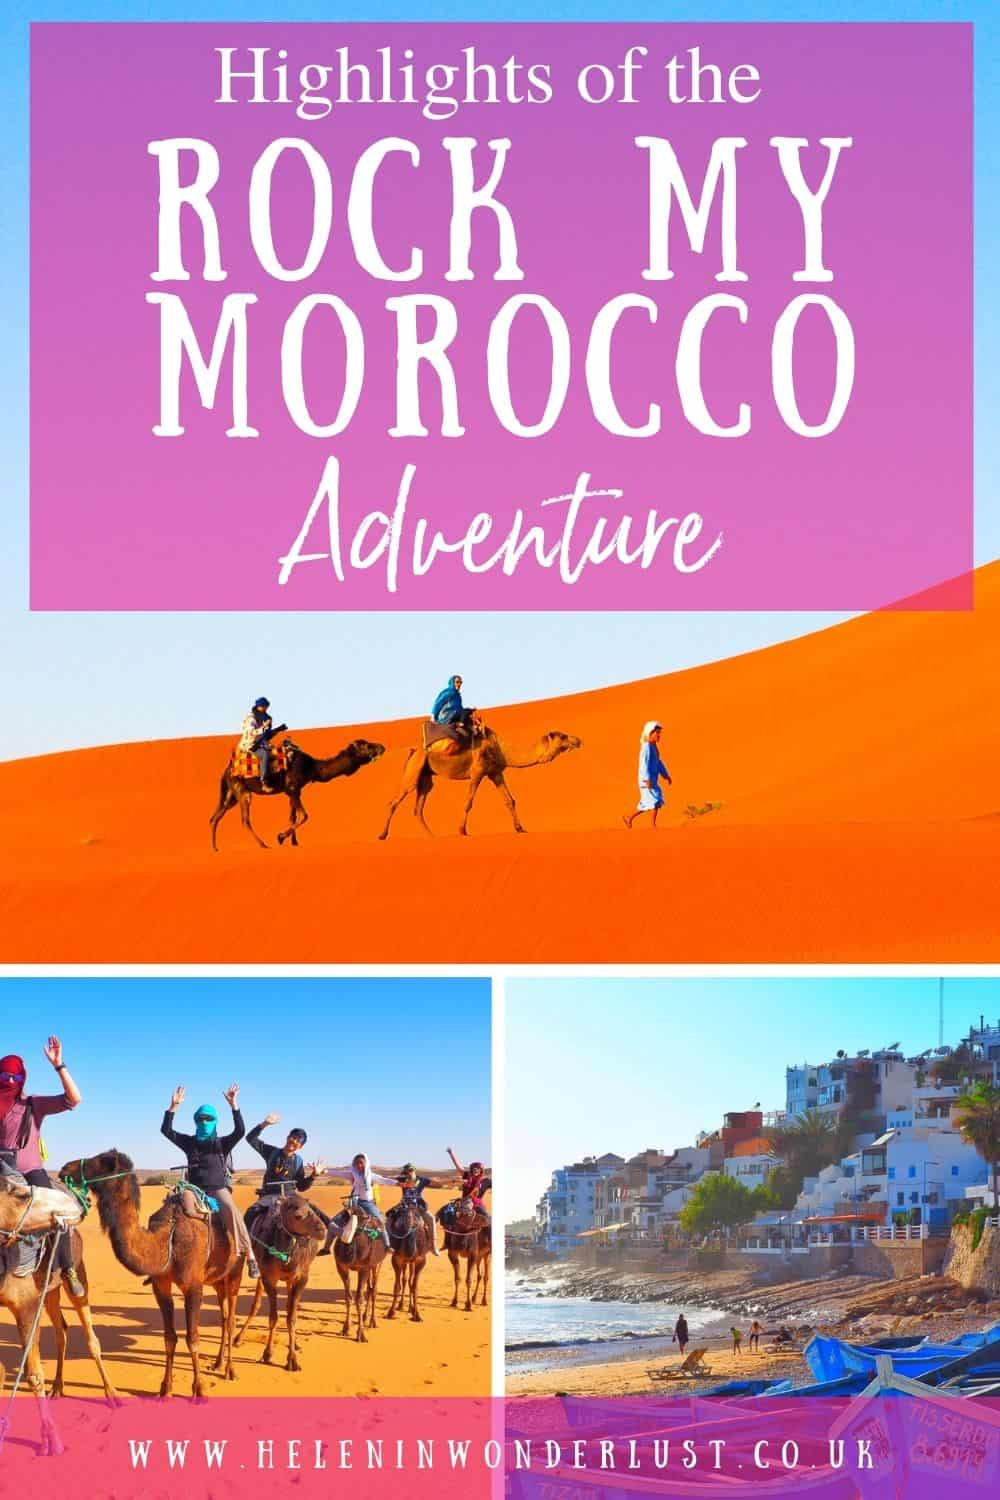 Highlights of the Rock My Morocco Adventure